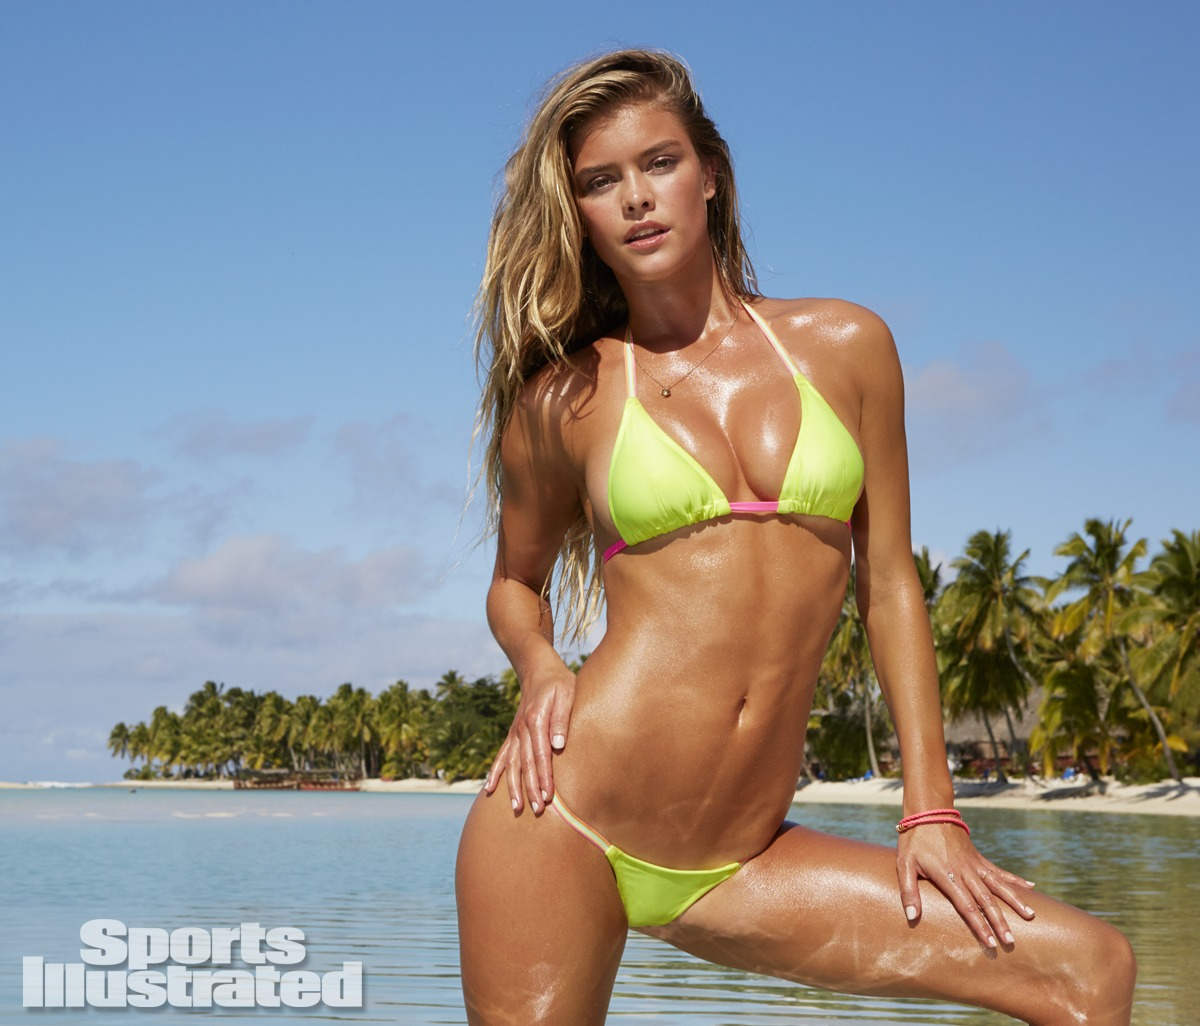 The 15 Hottest Photos Of Nina Agdal On The Internet - TheRichest